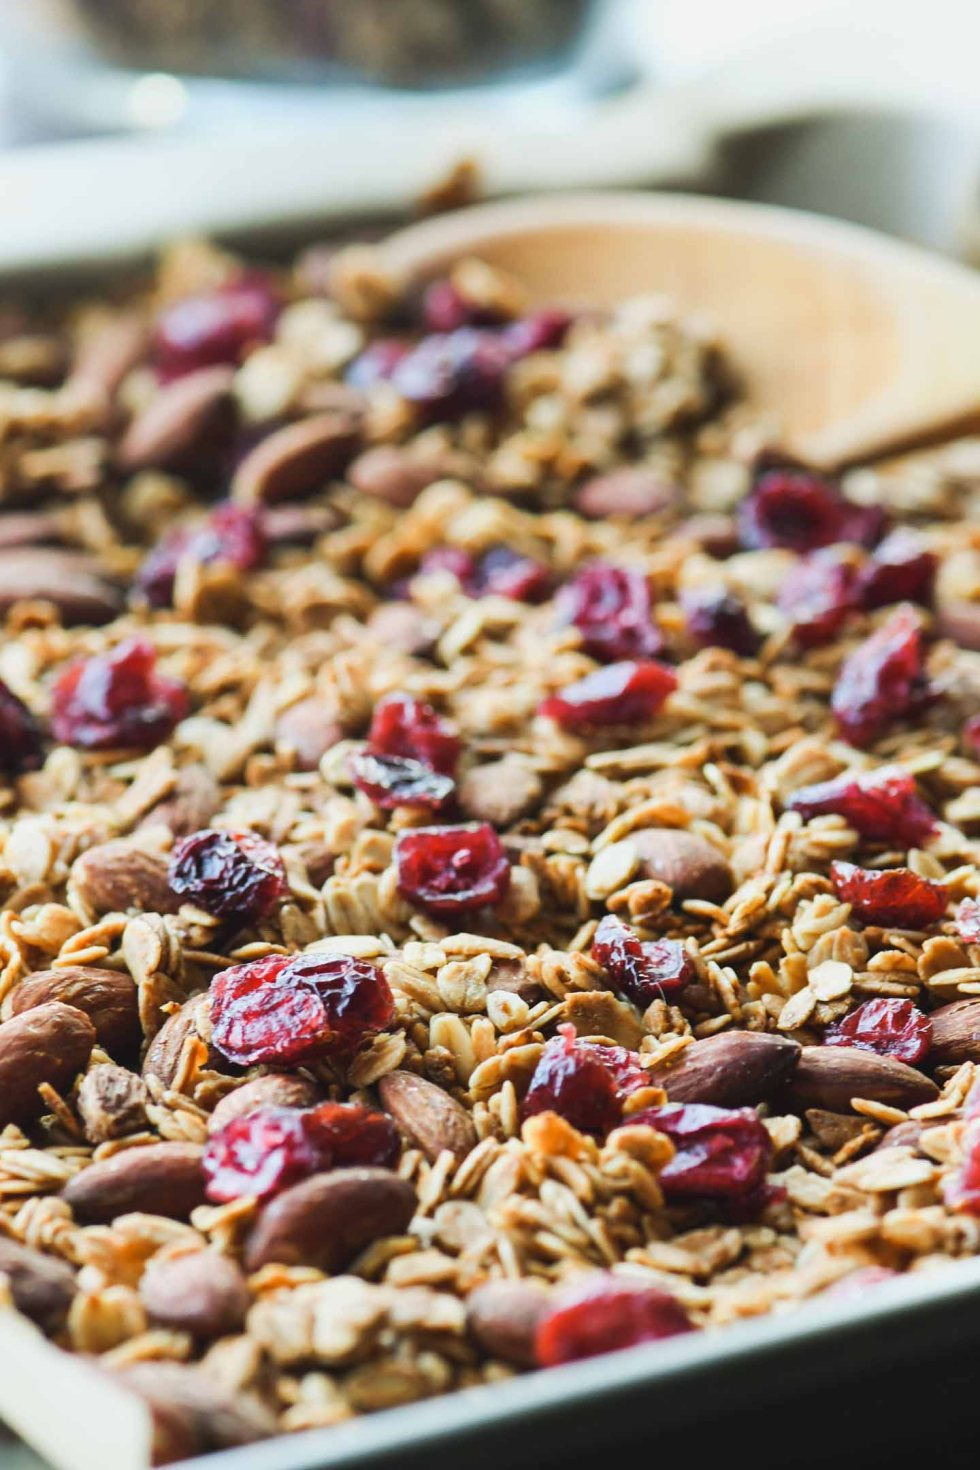 Homemade Honey Flax Granola sprinkled with dried cranberries on a baking sheet